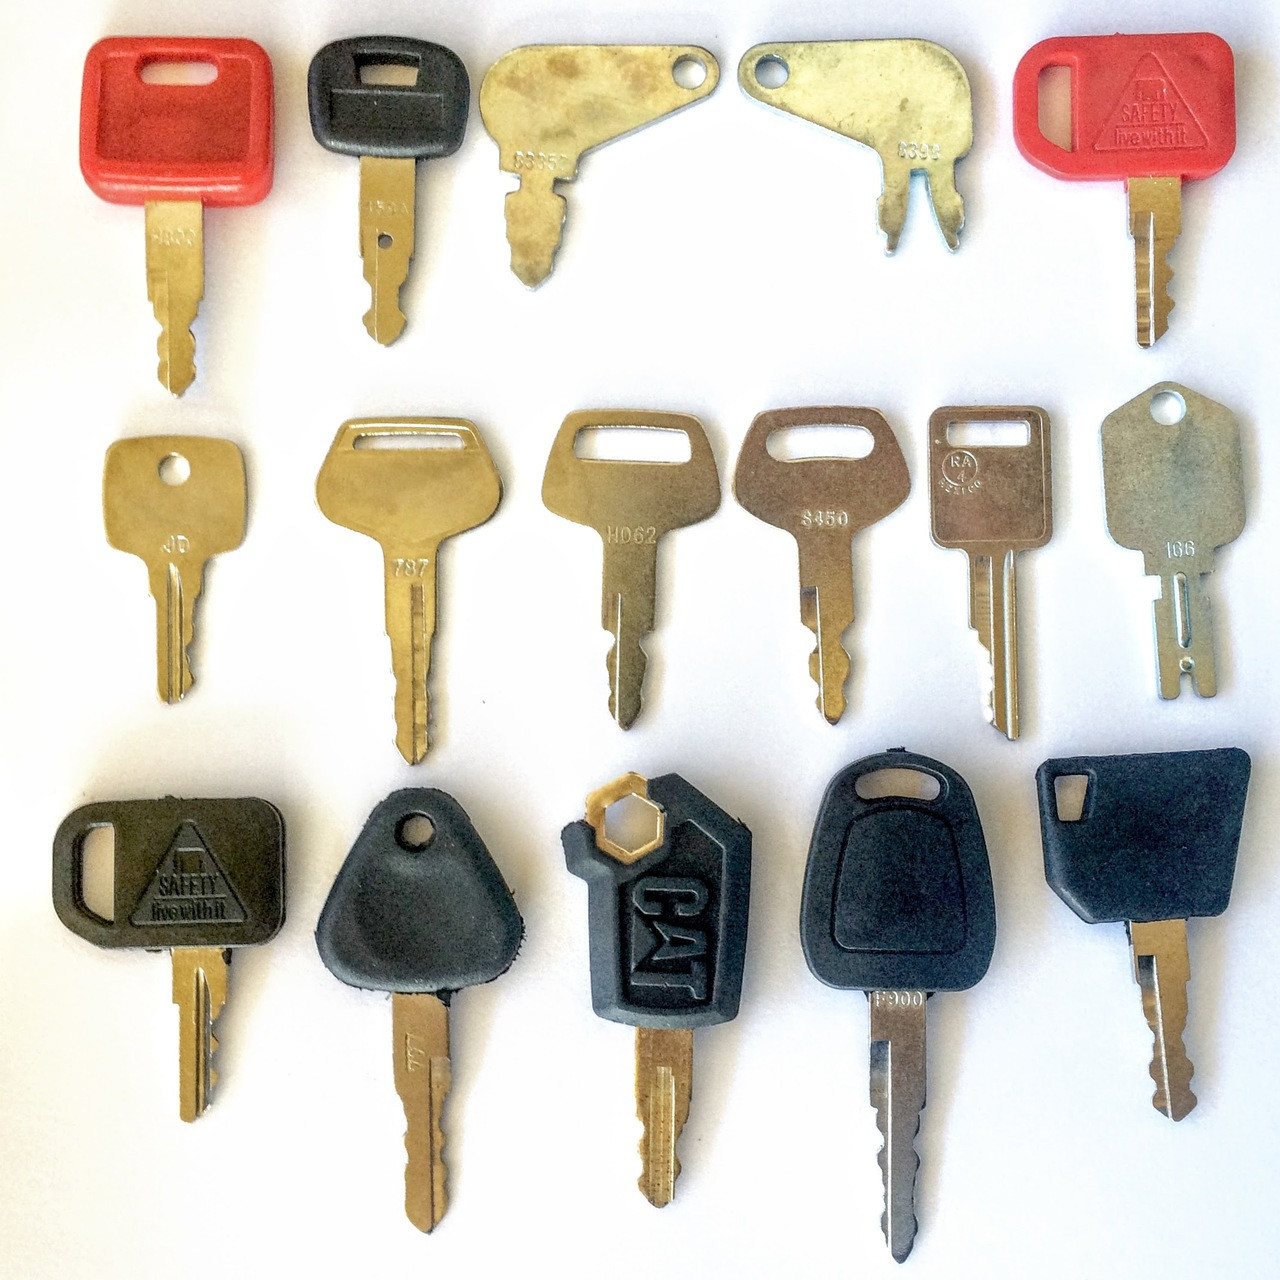 Fiat New Holland Ignition key 5 keys for John Deere Hitachi H800R Case